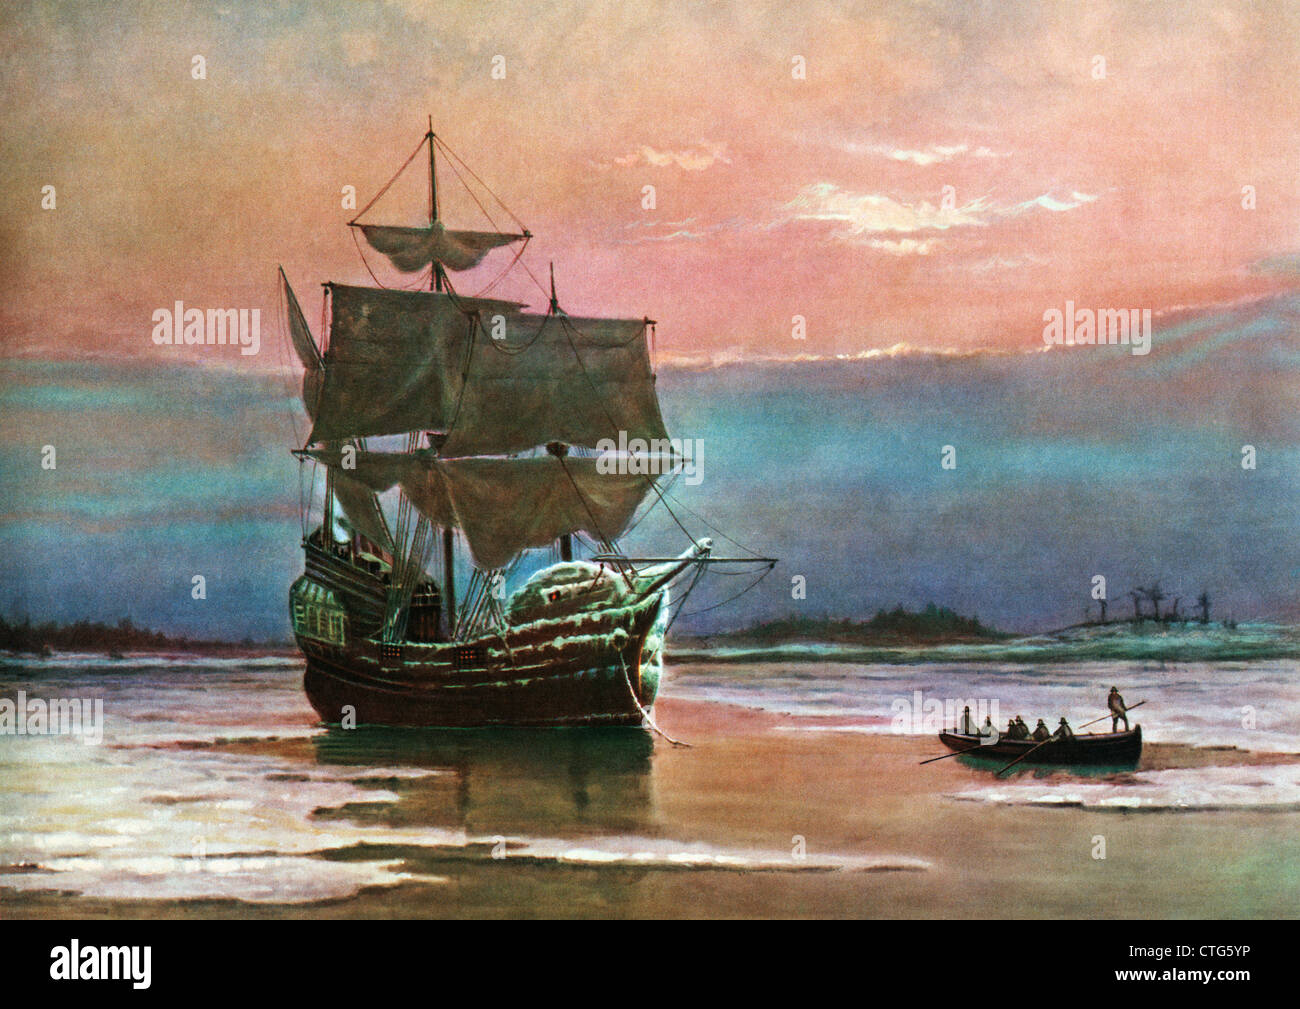 MALEREI DES SCHIFFES MAYFLOWER 1620 IN PLYMOUTH HARBOR DURCH WILLIAM HALSALL PILGER TRANSPORT Stockfoto